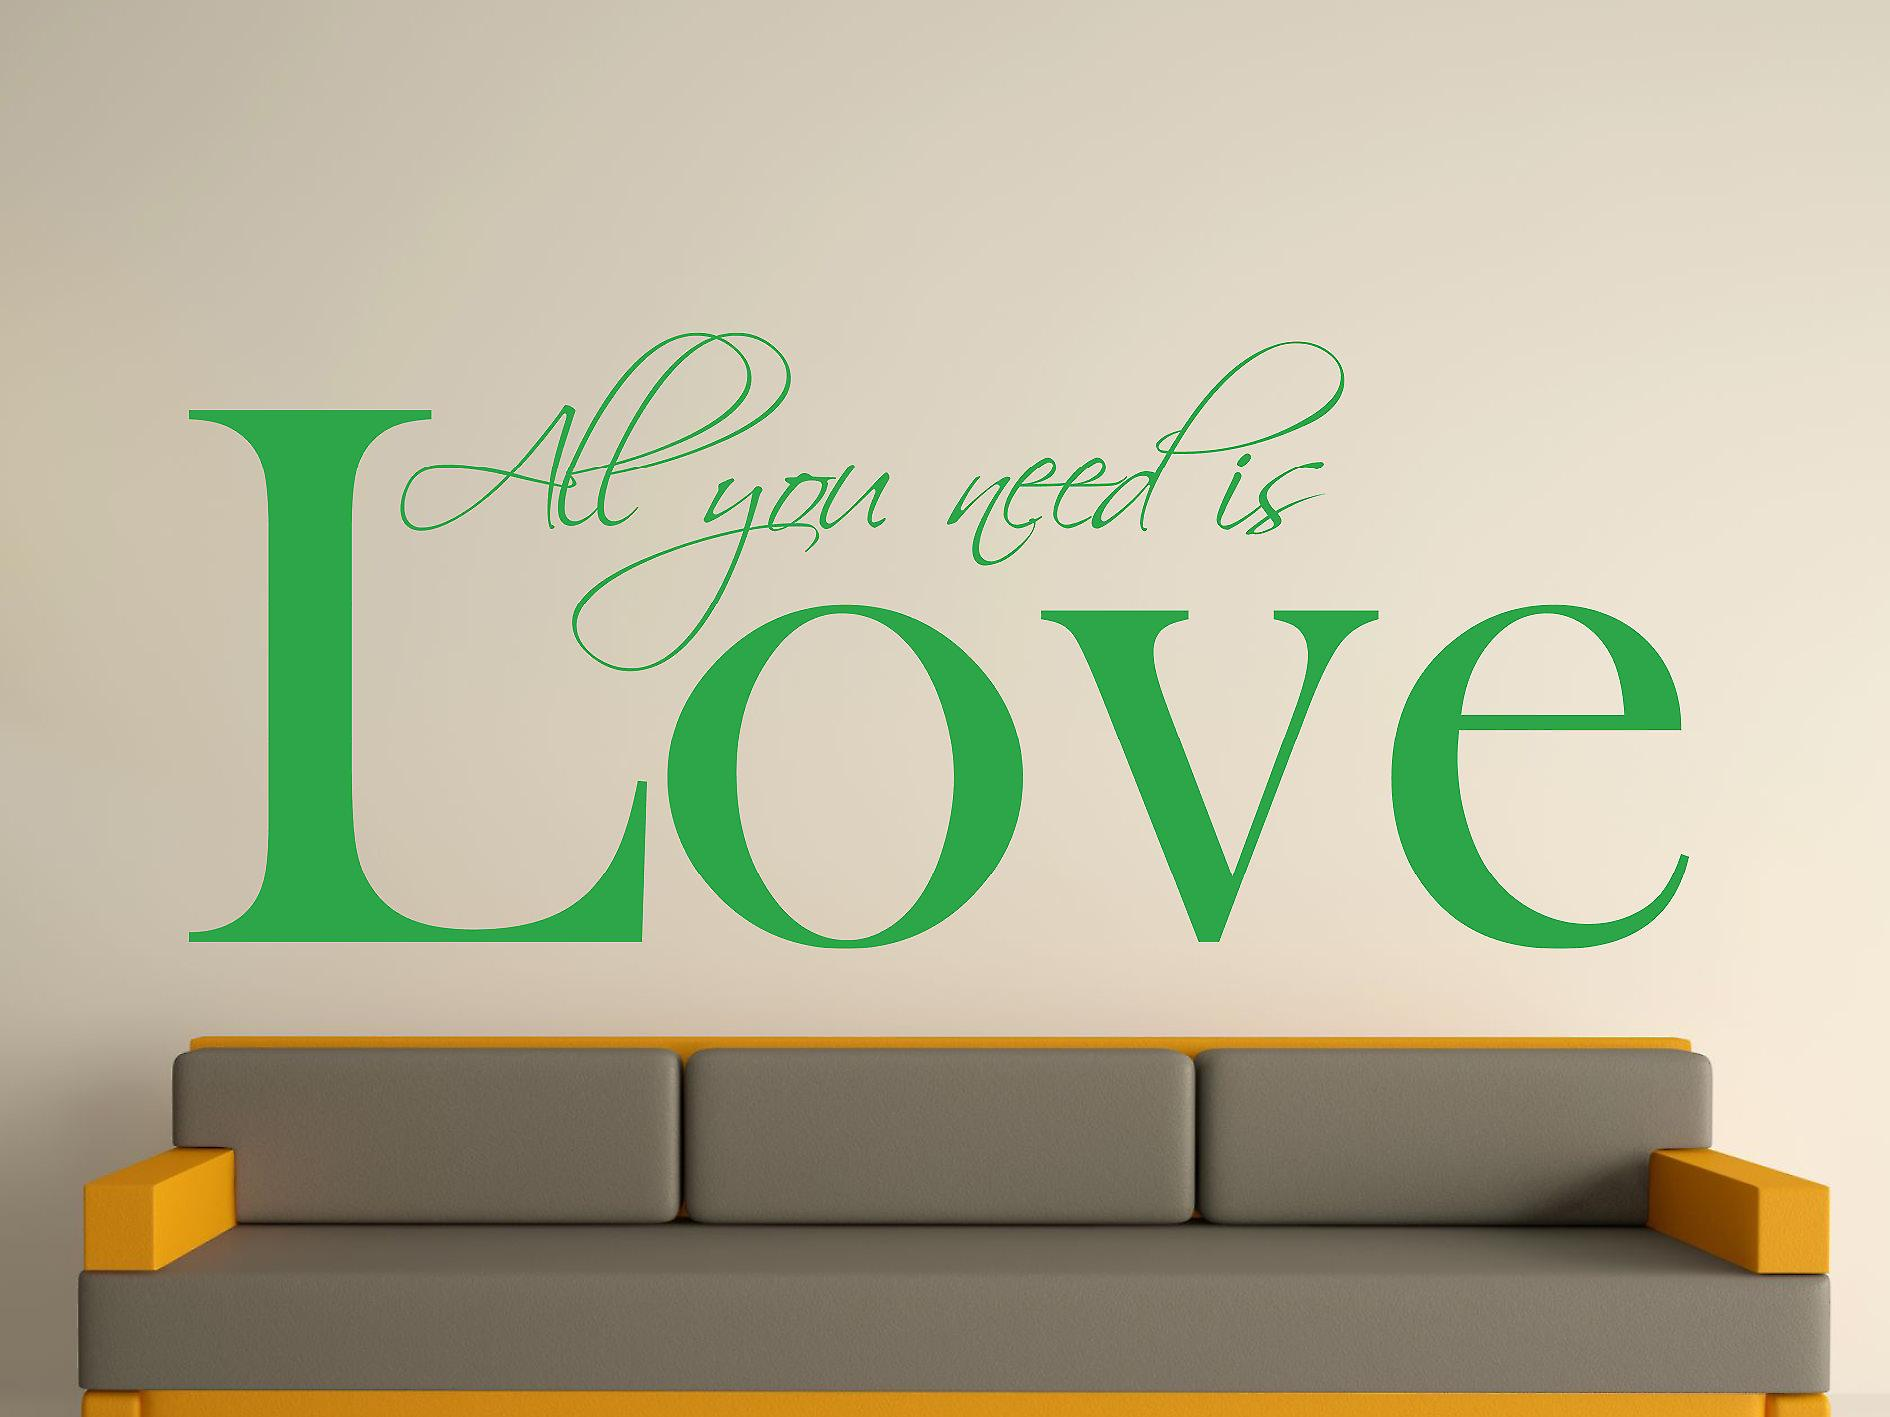 All You Need Wall Art Sticker -  Green